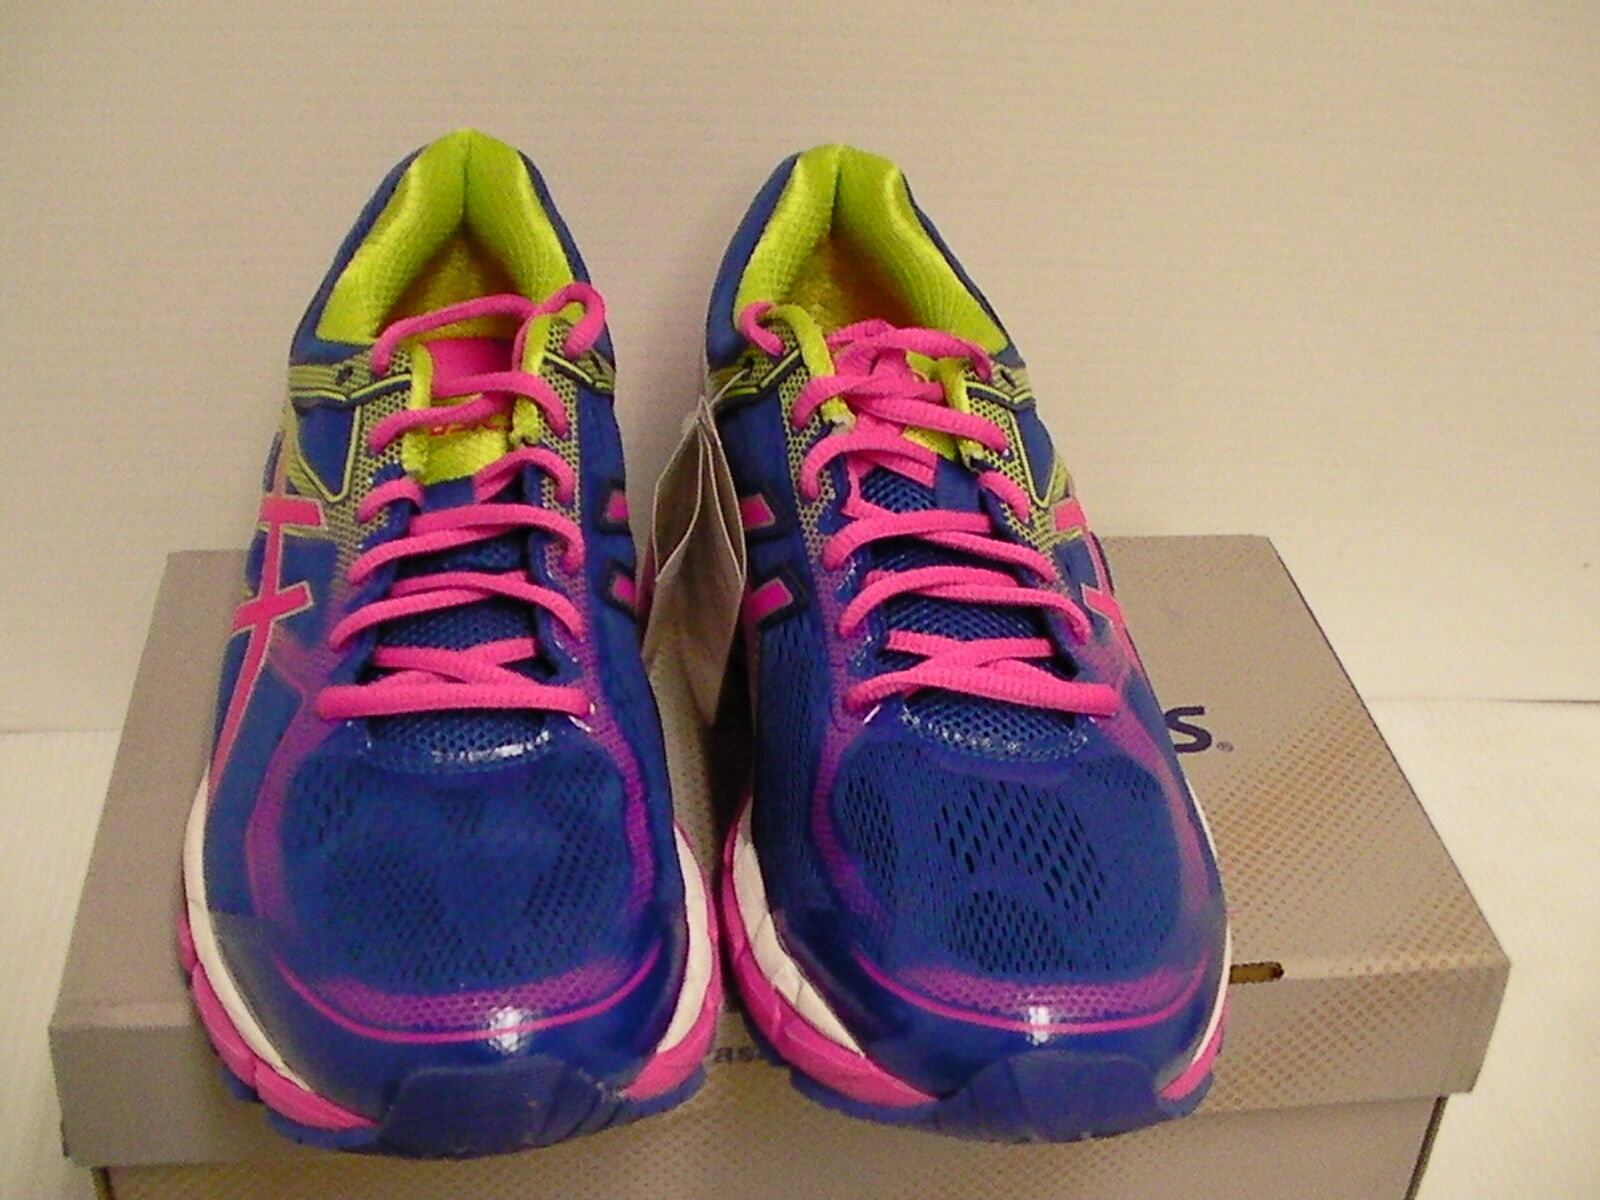 Asics Asics Asics women's running shoes gel surveyor 5 bluee pink lime size 9 887582